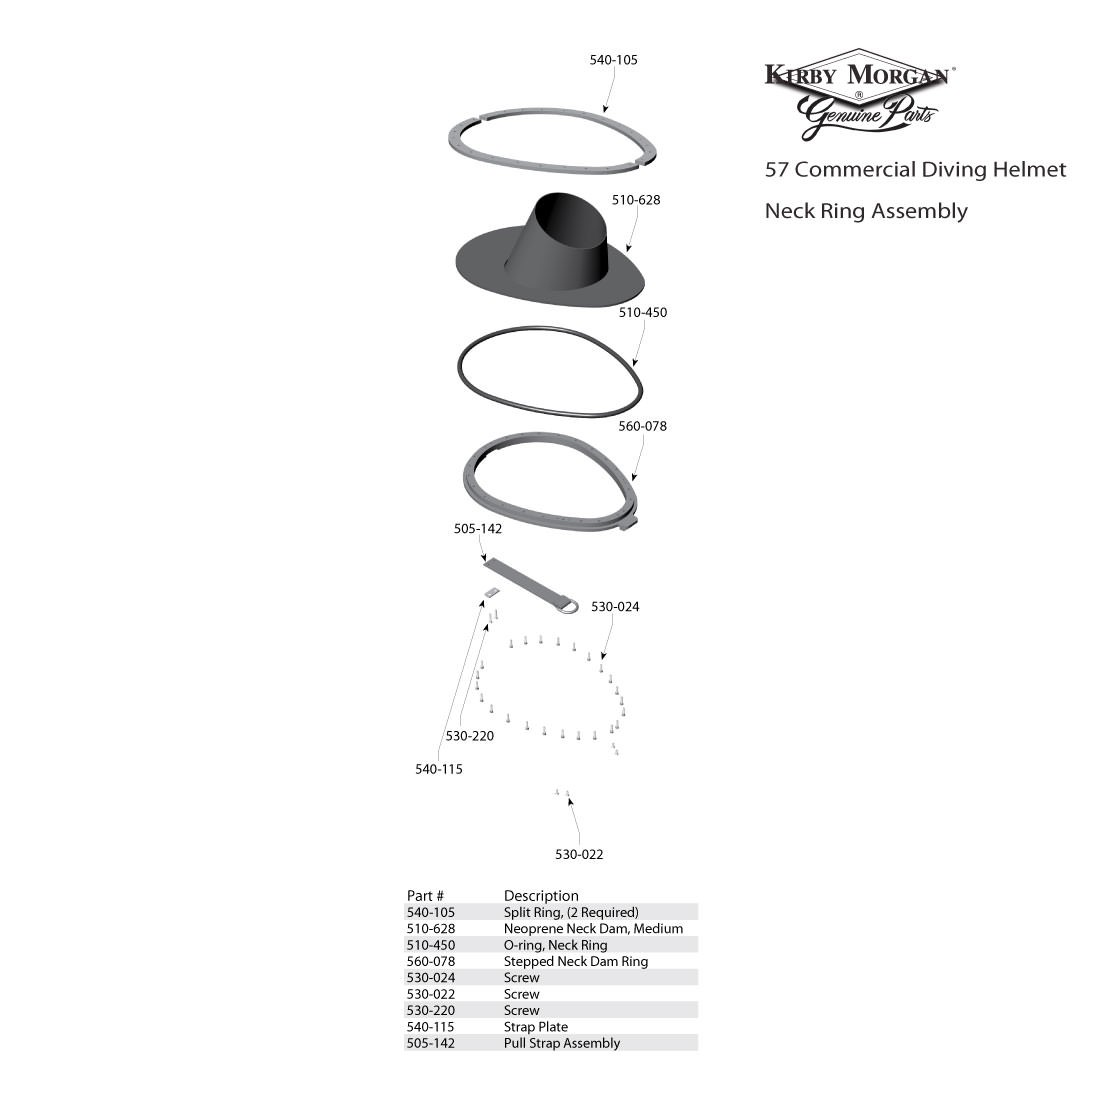 Kirby Morgan 57 Commercial Diving Helmet  - Neck Ring Assembly